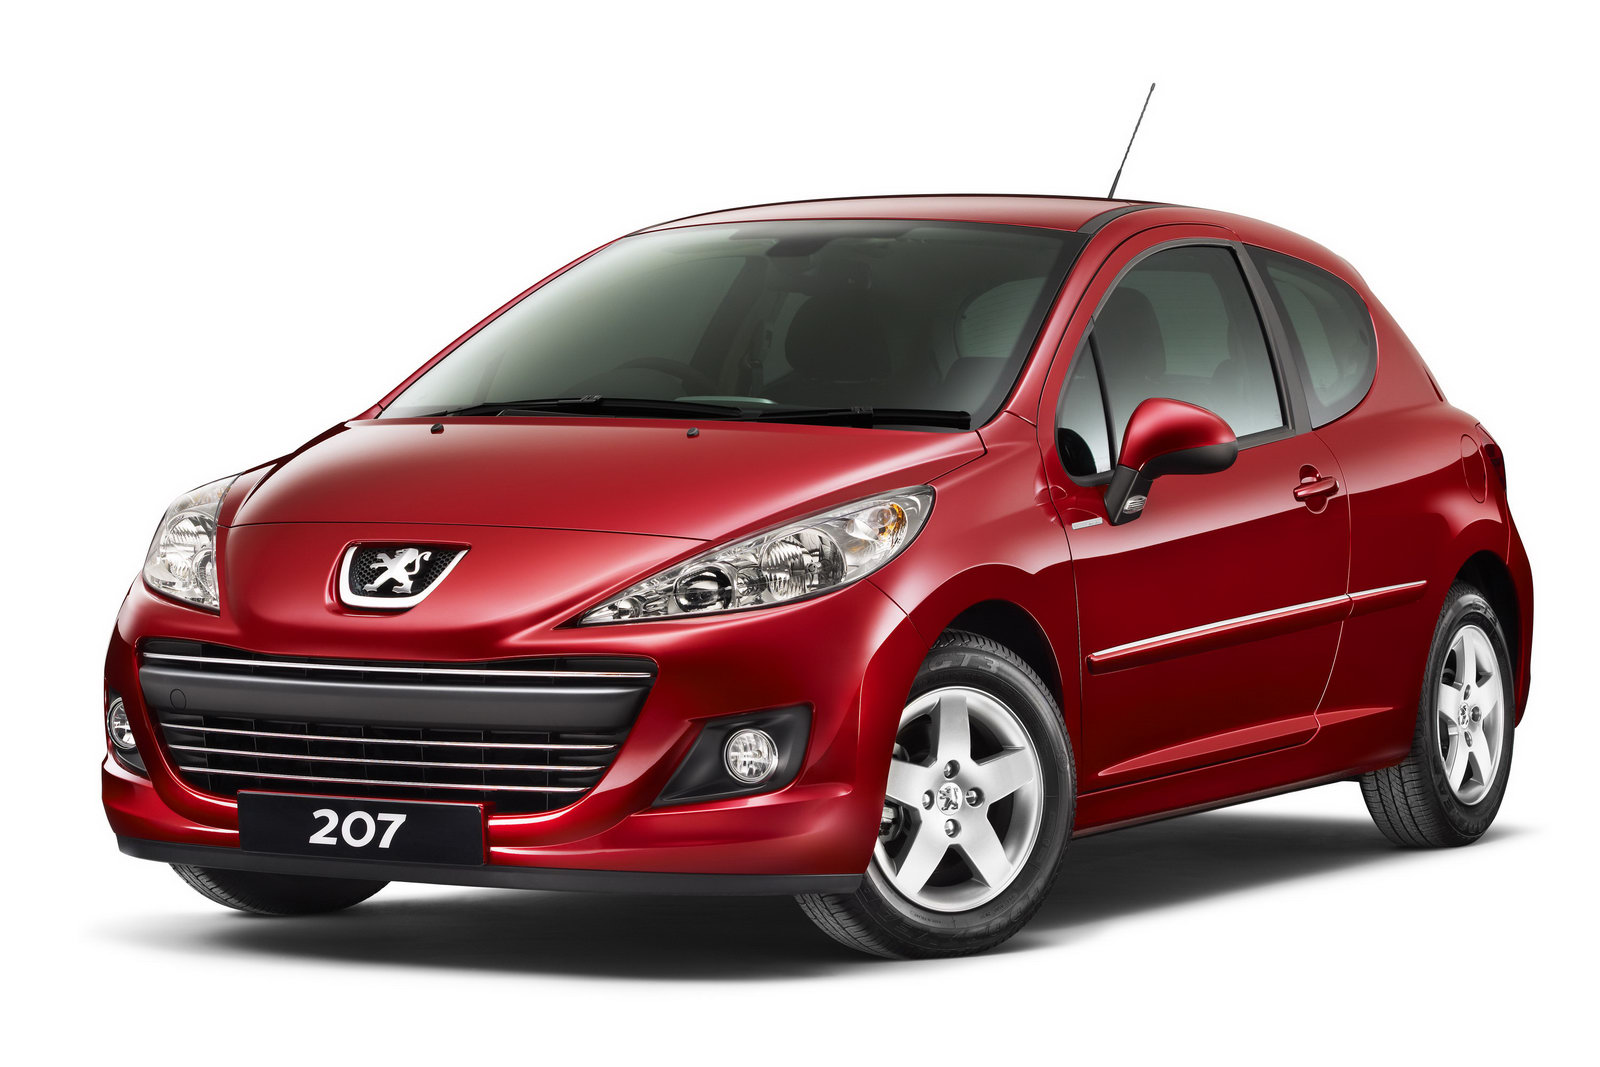 auto cars 2011 2012 peugeot uk announces 207 millesim 200 special edition. Black Bedroom Furniture Sets. Home Design Ideas